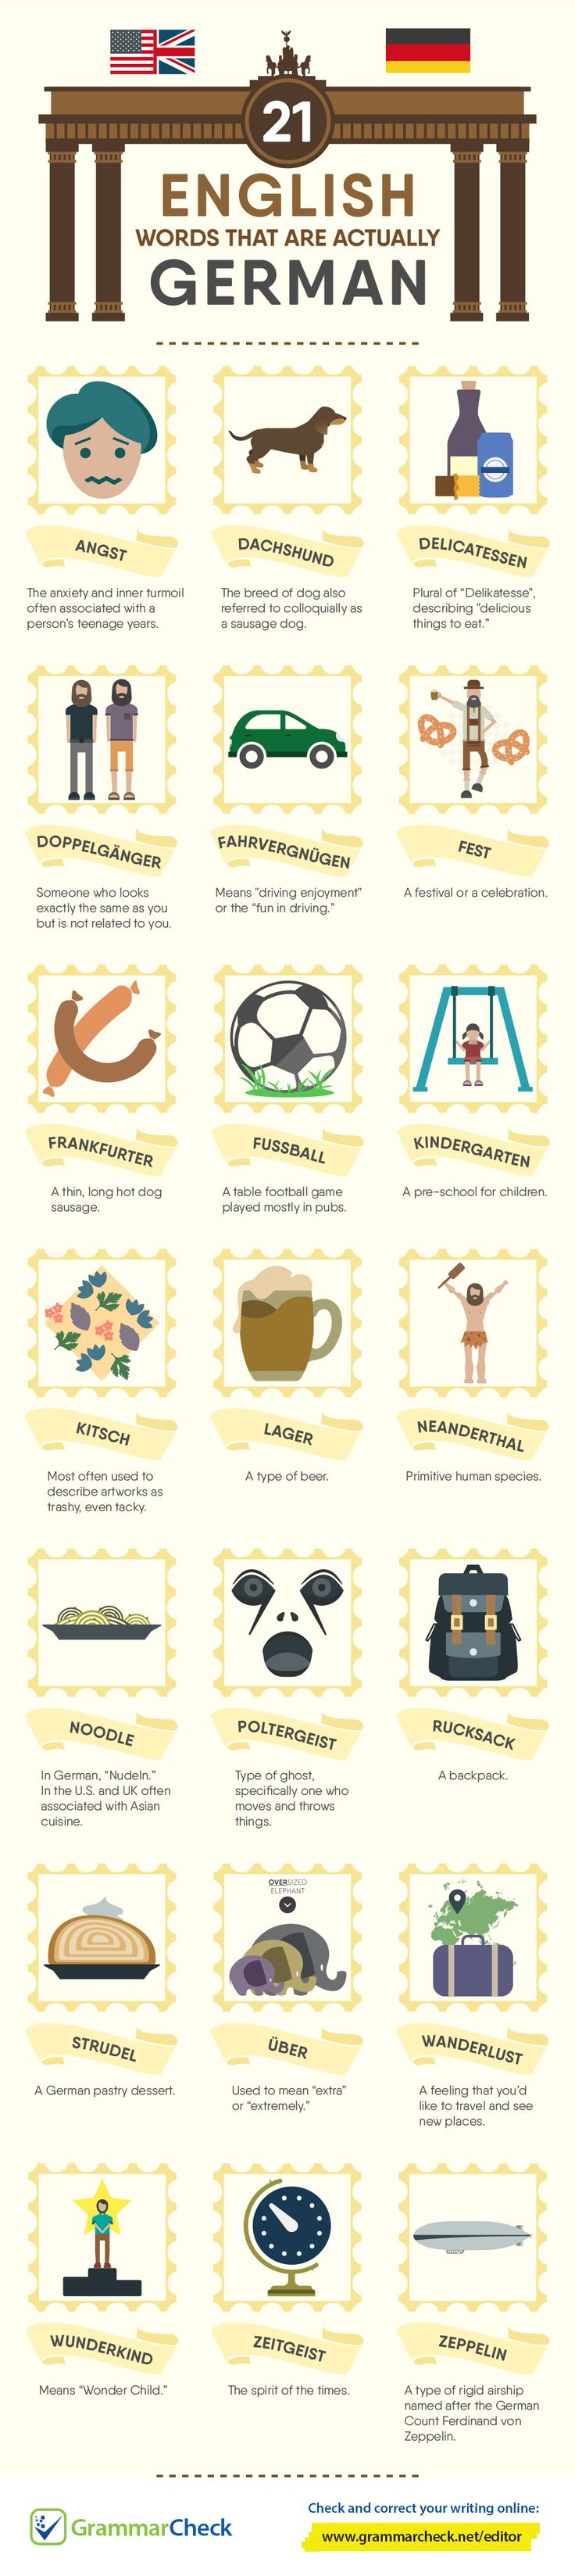 Free Education For All: 20 English Words That Are Actually German (infogr